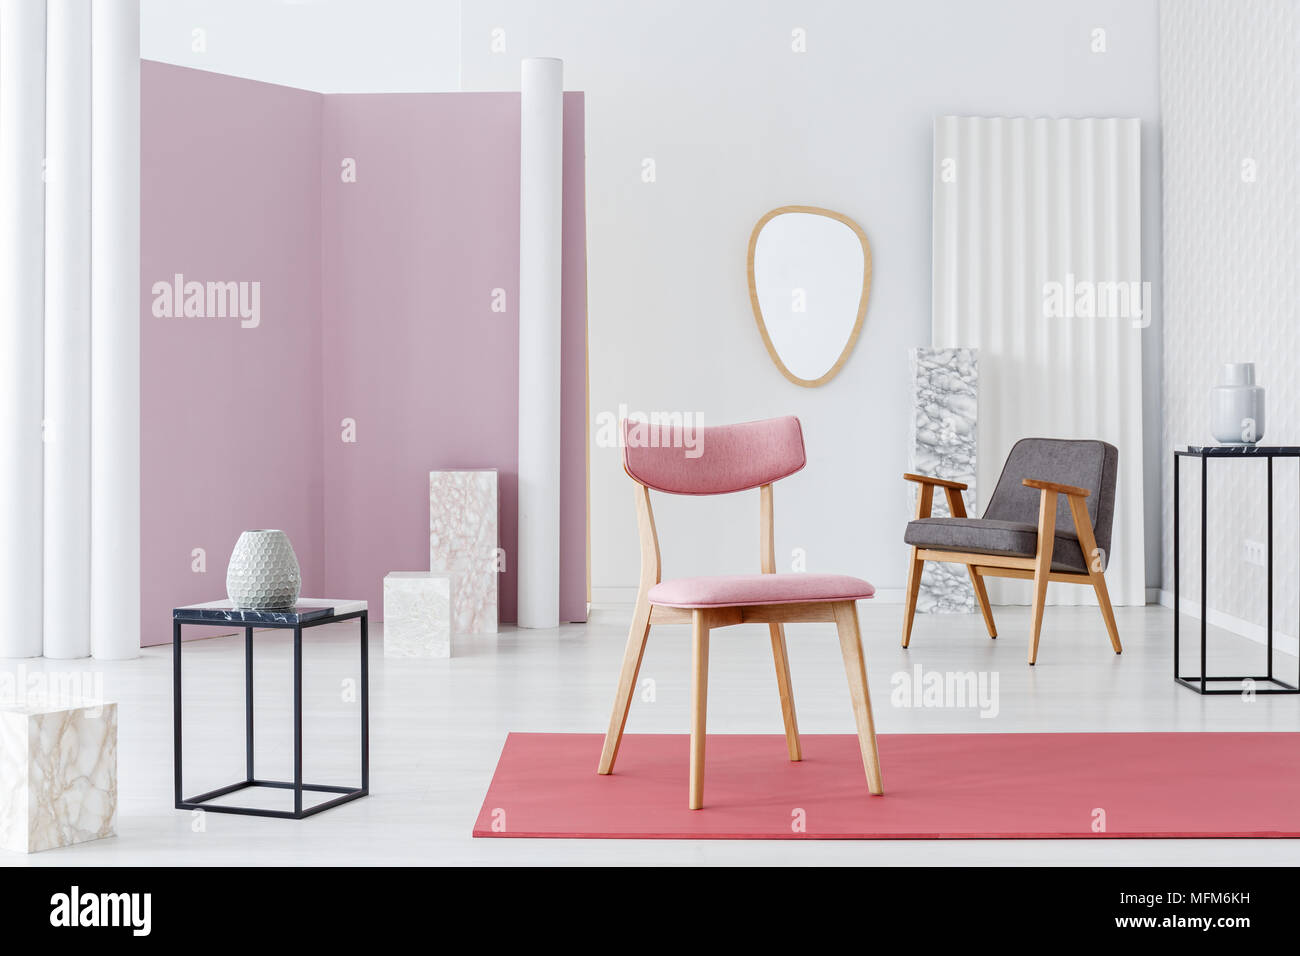 modern armchair design home desk chairs pink upholstered chair and marble cubes decorations in a white classy luxurious living room interior with minimalist